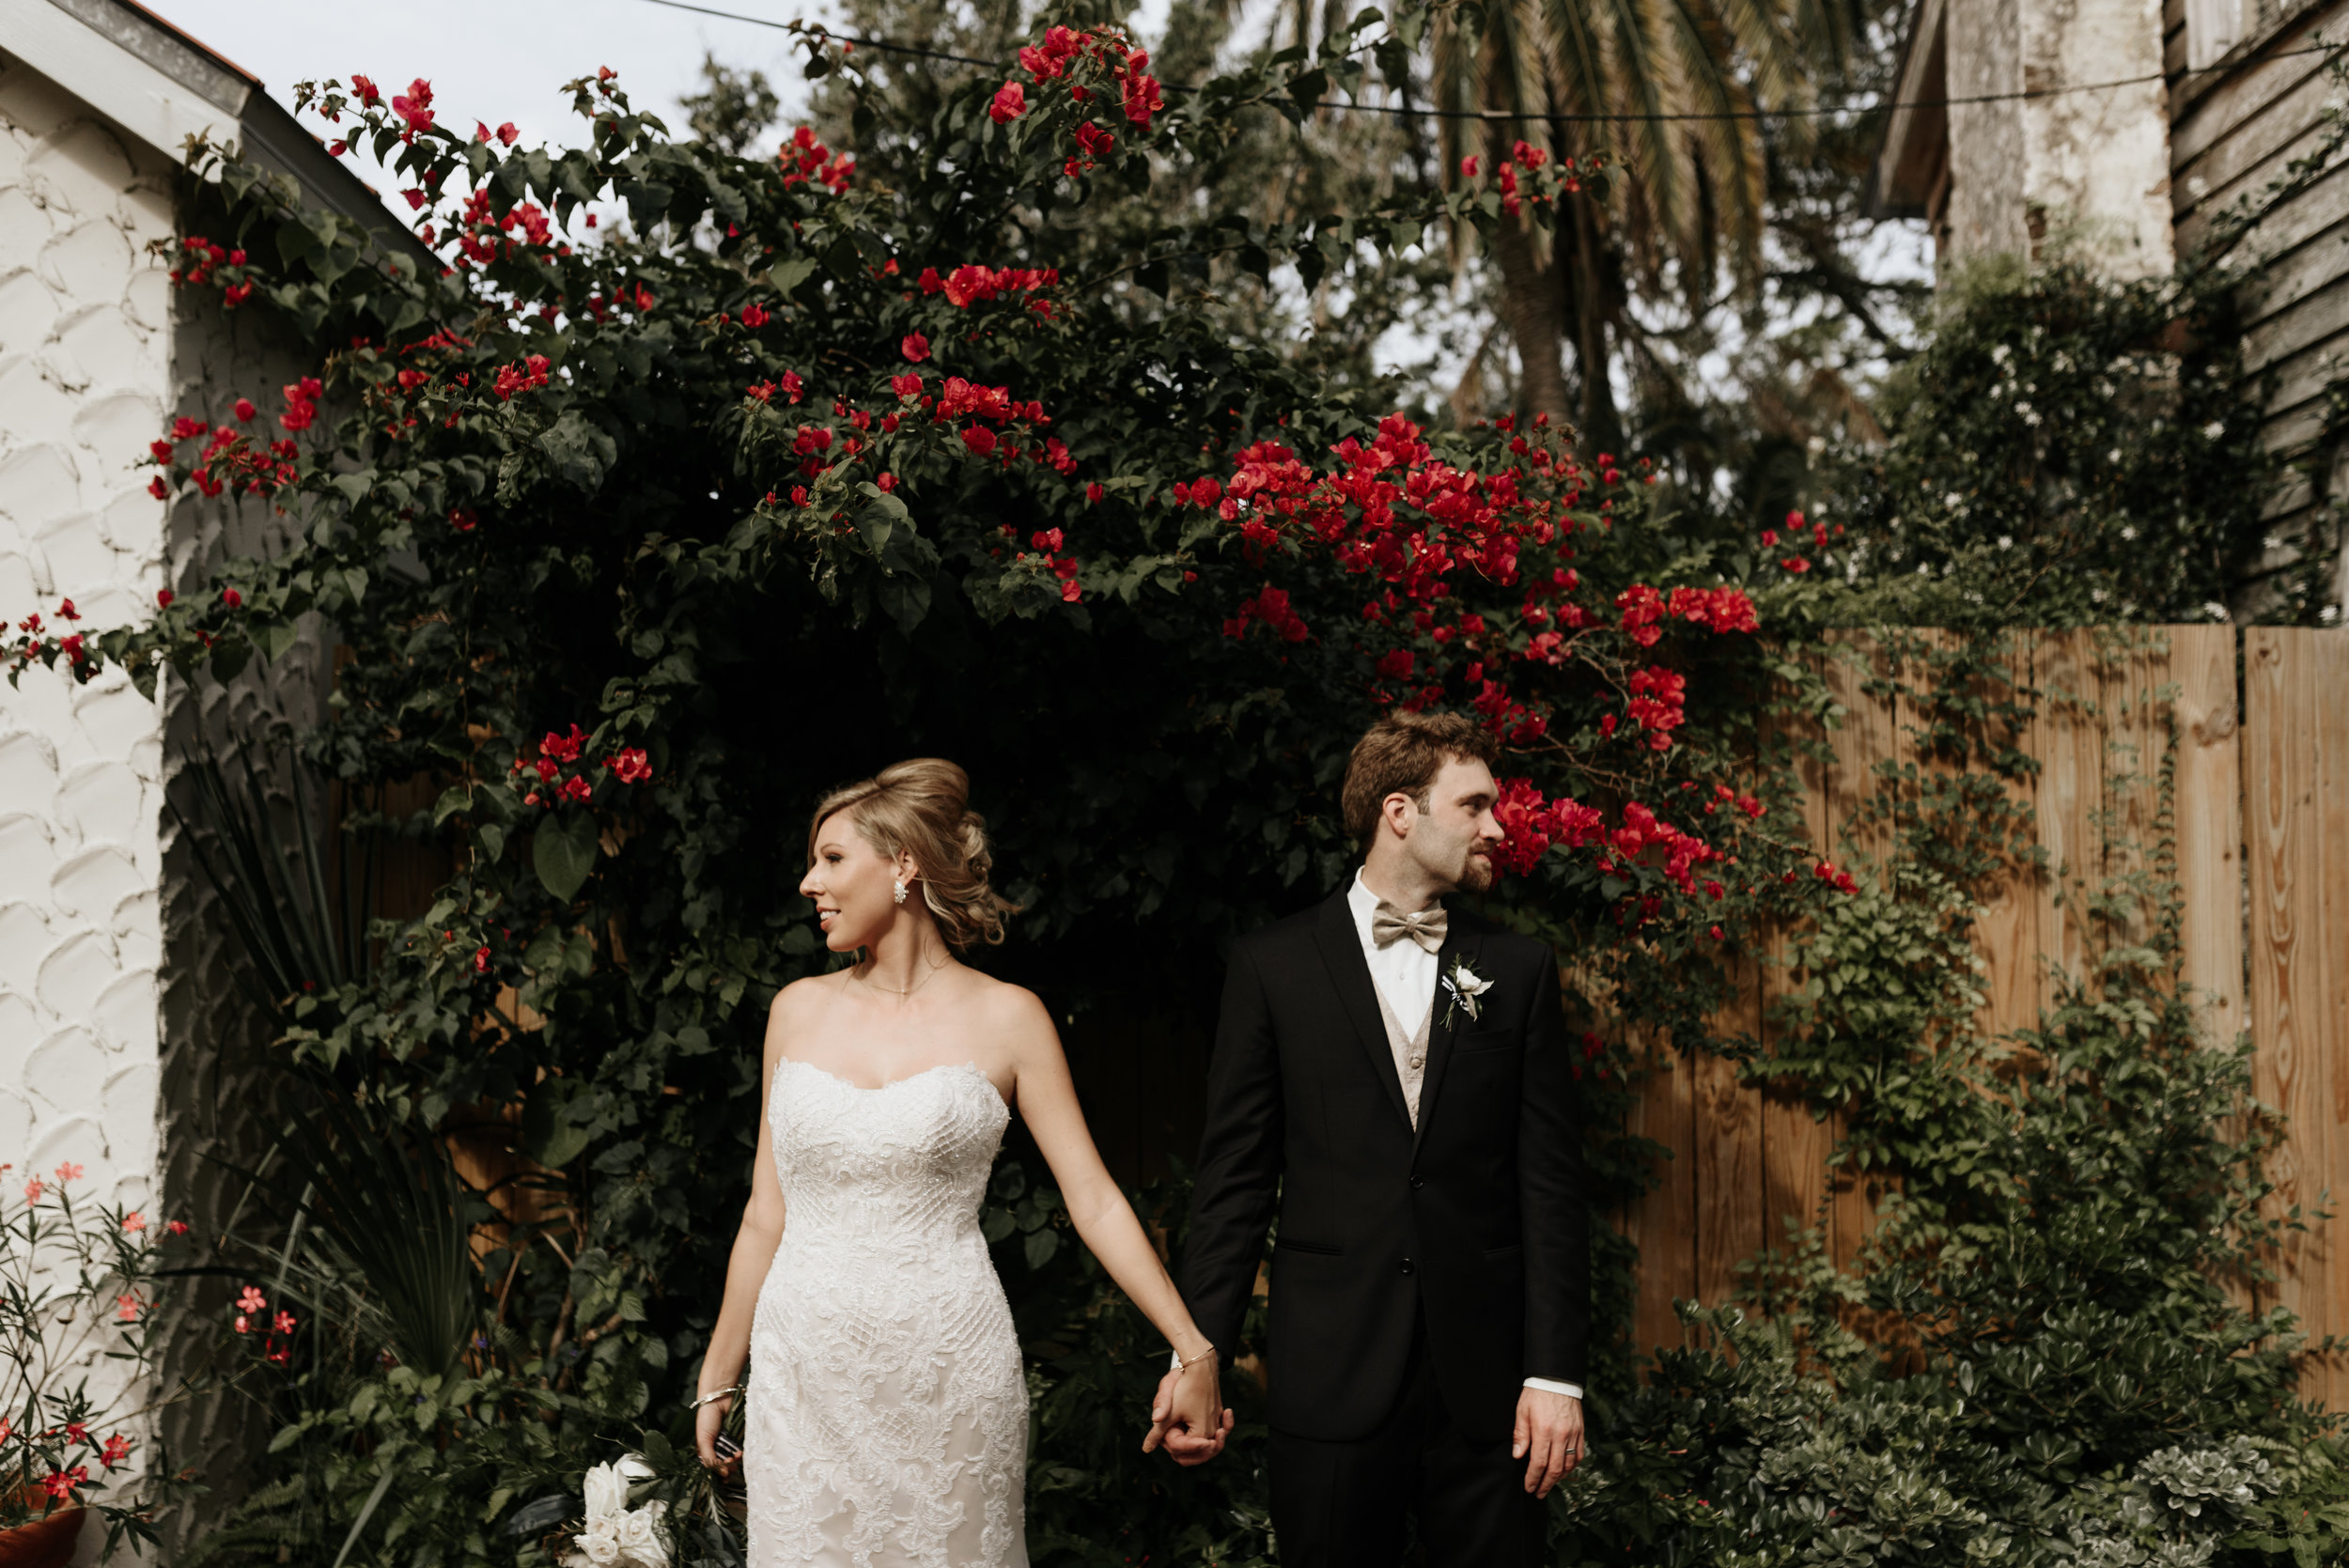 Mandy-Brad-Wedding-Previews-0713.jpg